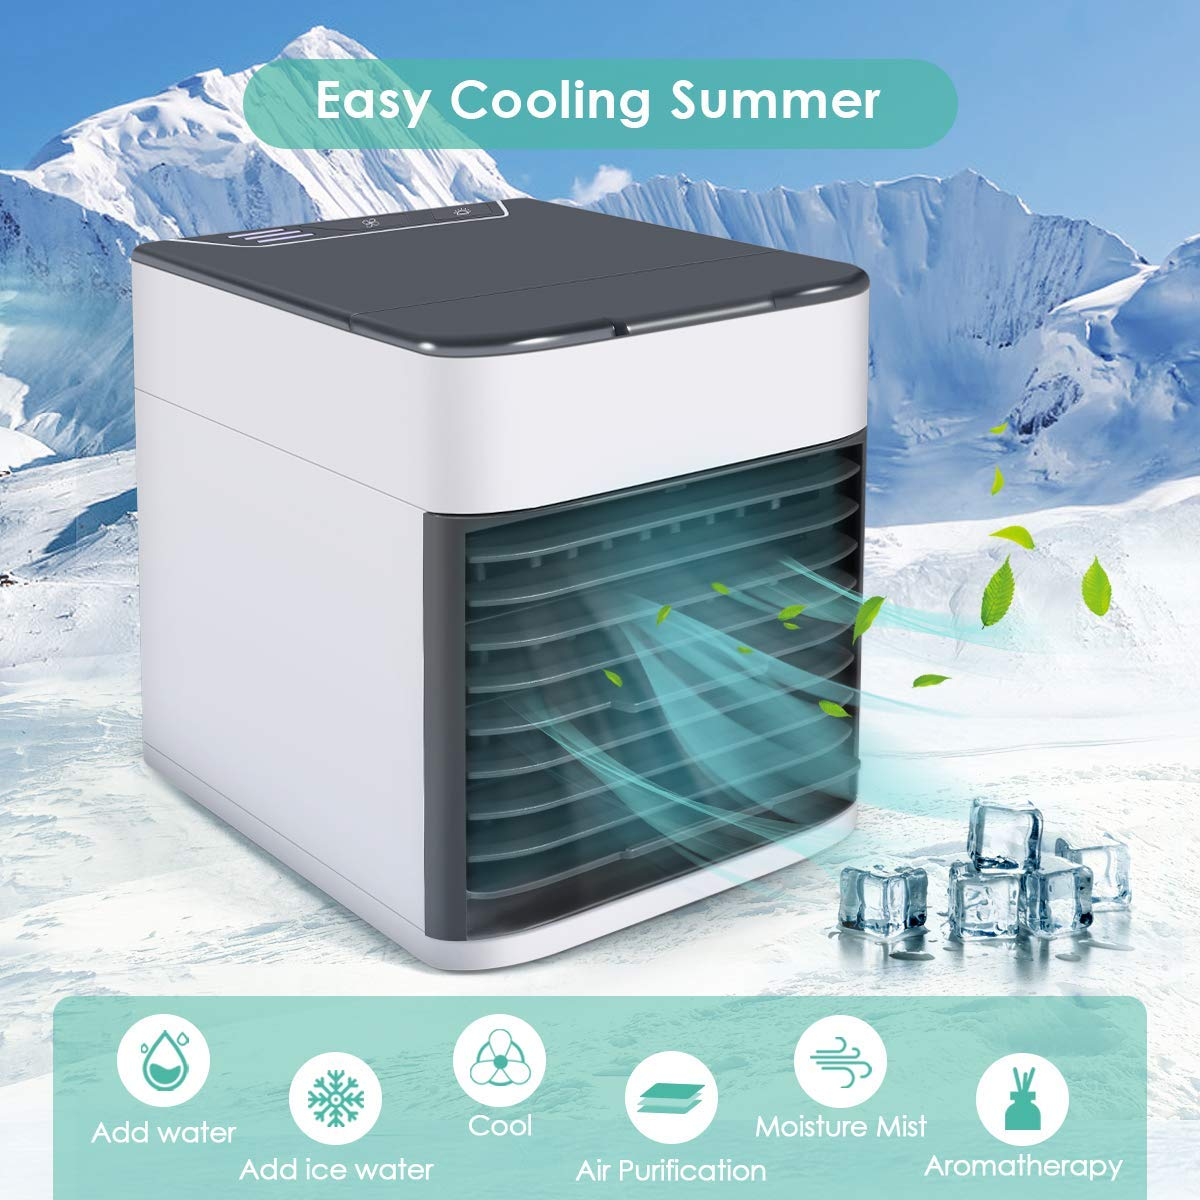 Room Mini Portable Desktop Fan Personal Misting Table Fan Small Evaporative Air Cooler Circulator Humidifier for Office Outdoor Dorm Personal Space Air Conditioner